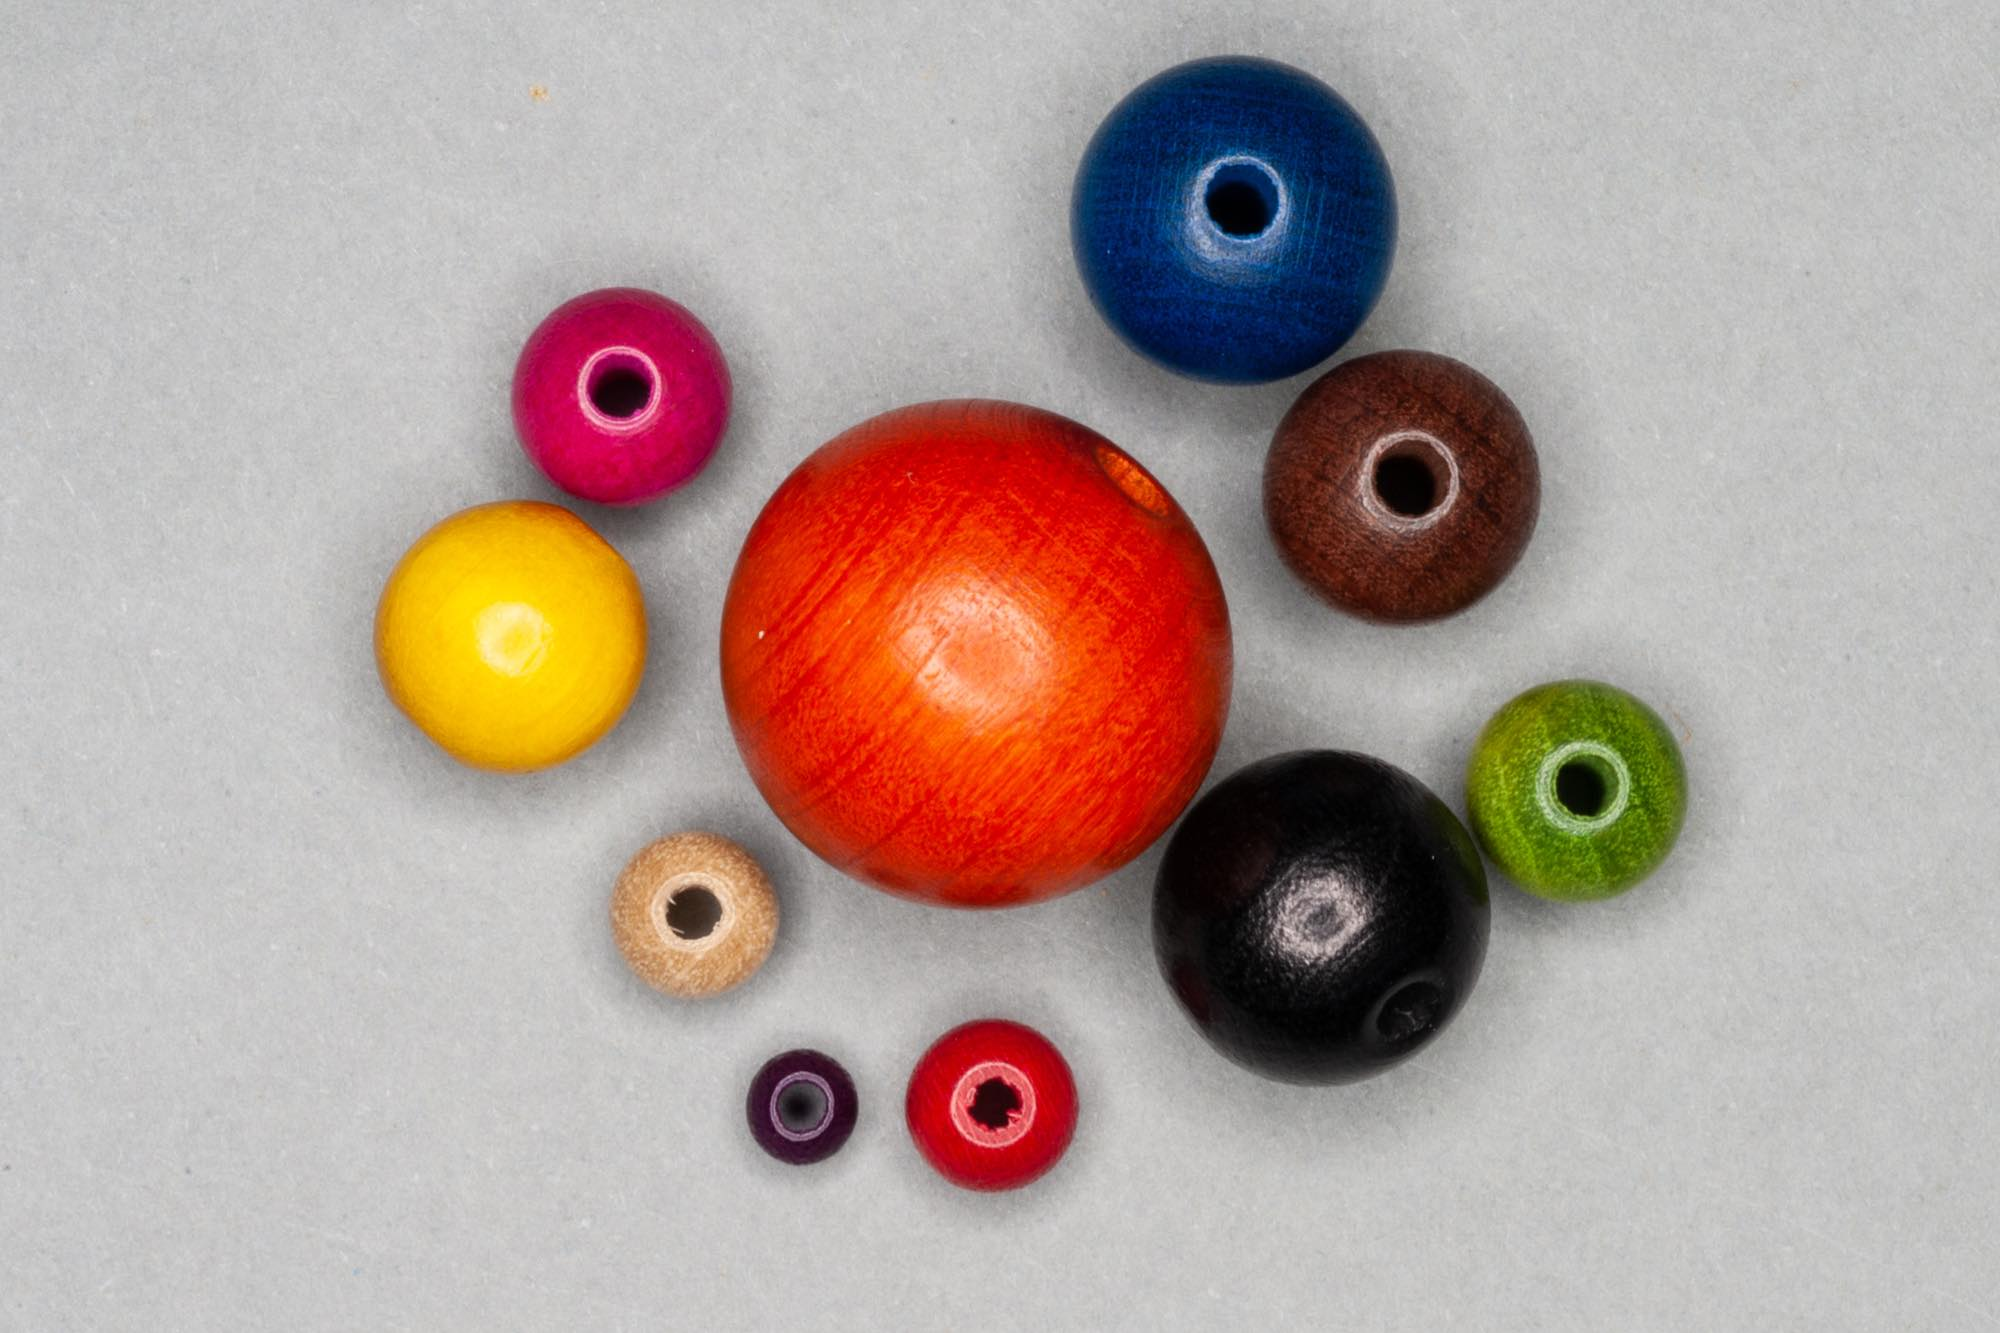 Round Wooden Bead 8mm/1.5mm Hole